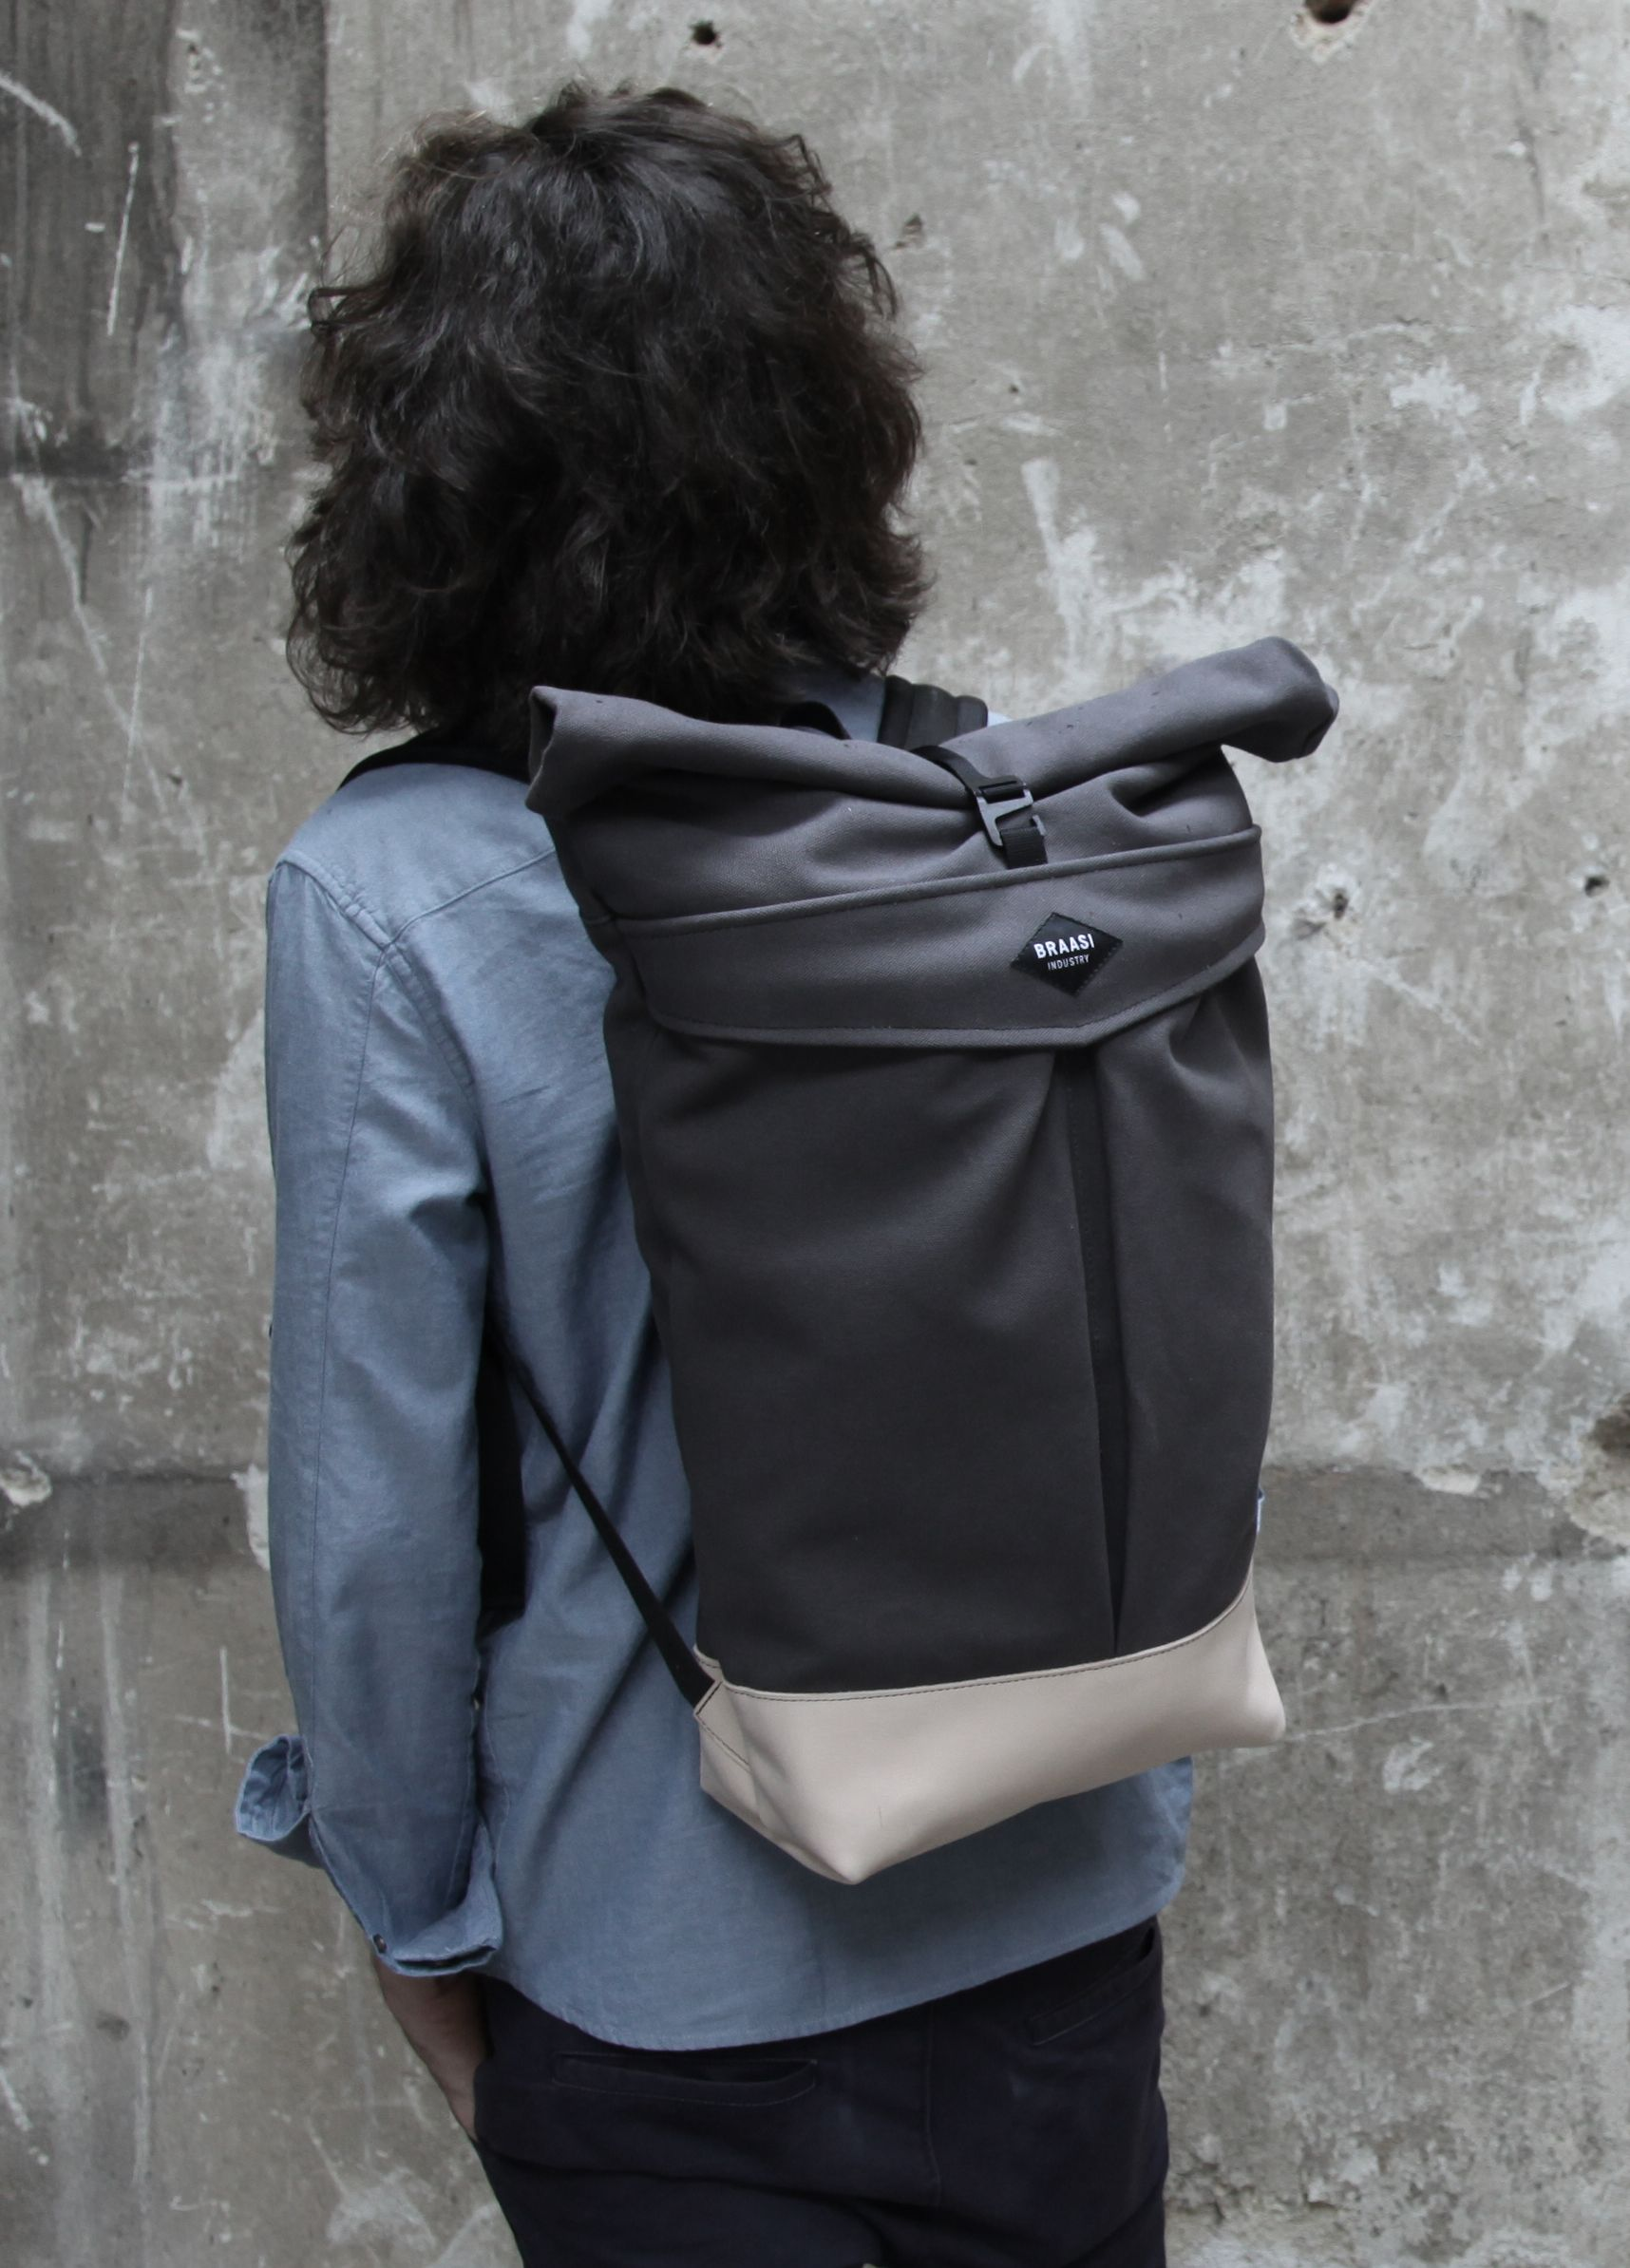 Backpack levo canvas grey | | Backpacks, Leather